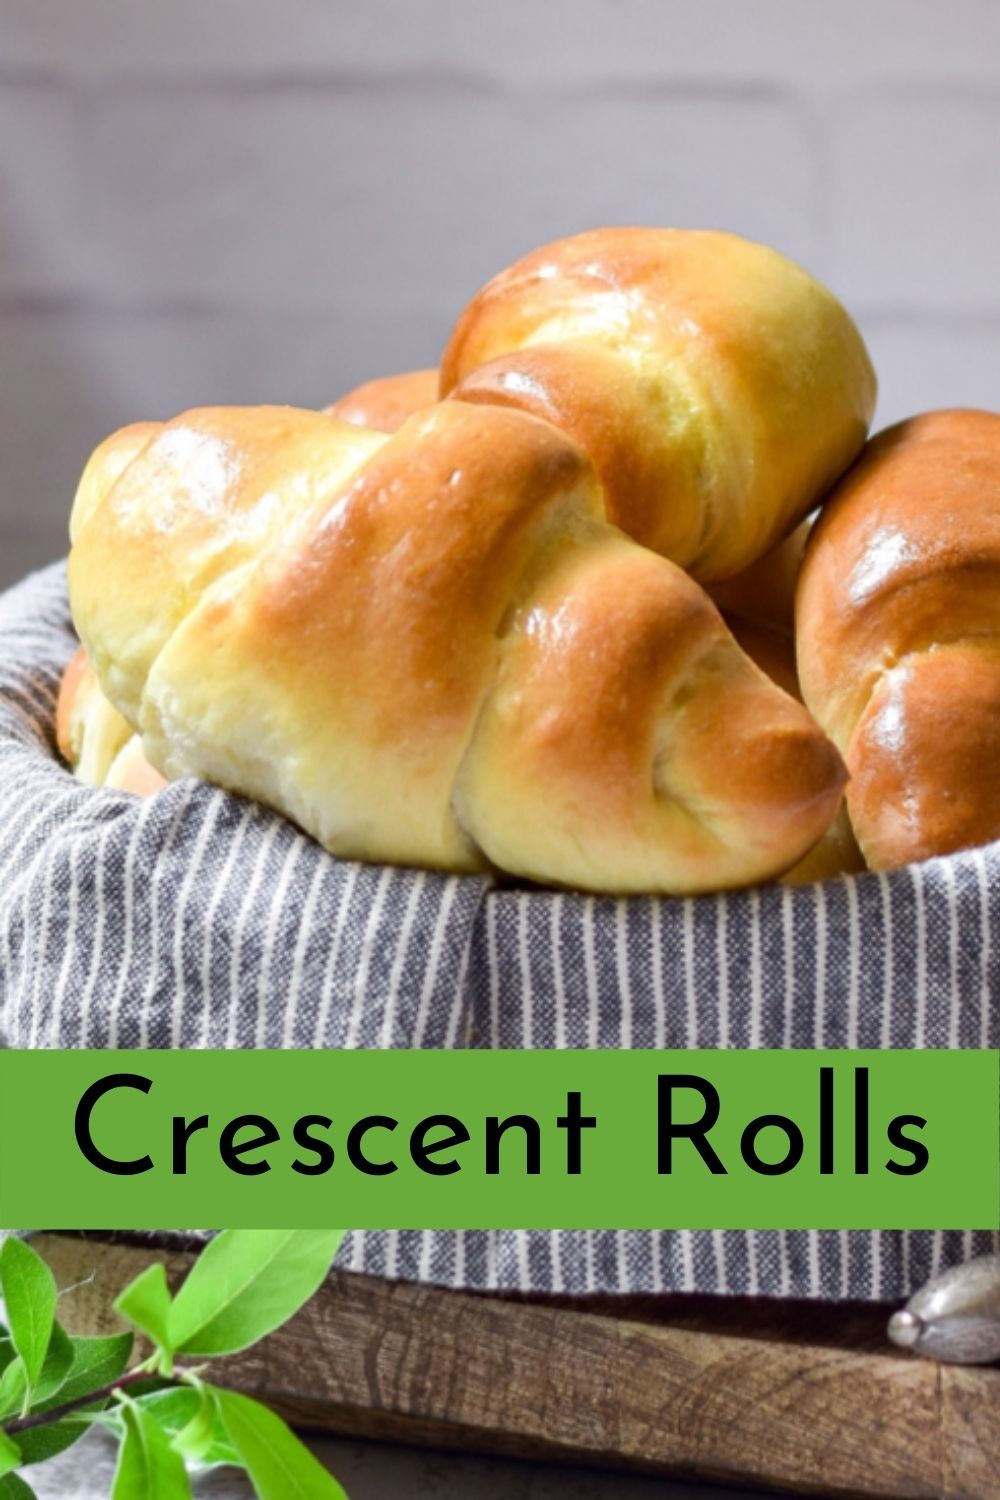 Easy Homemade Crescent Rolls in a basket